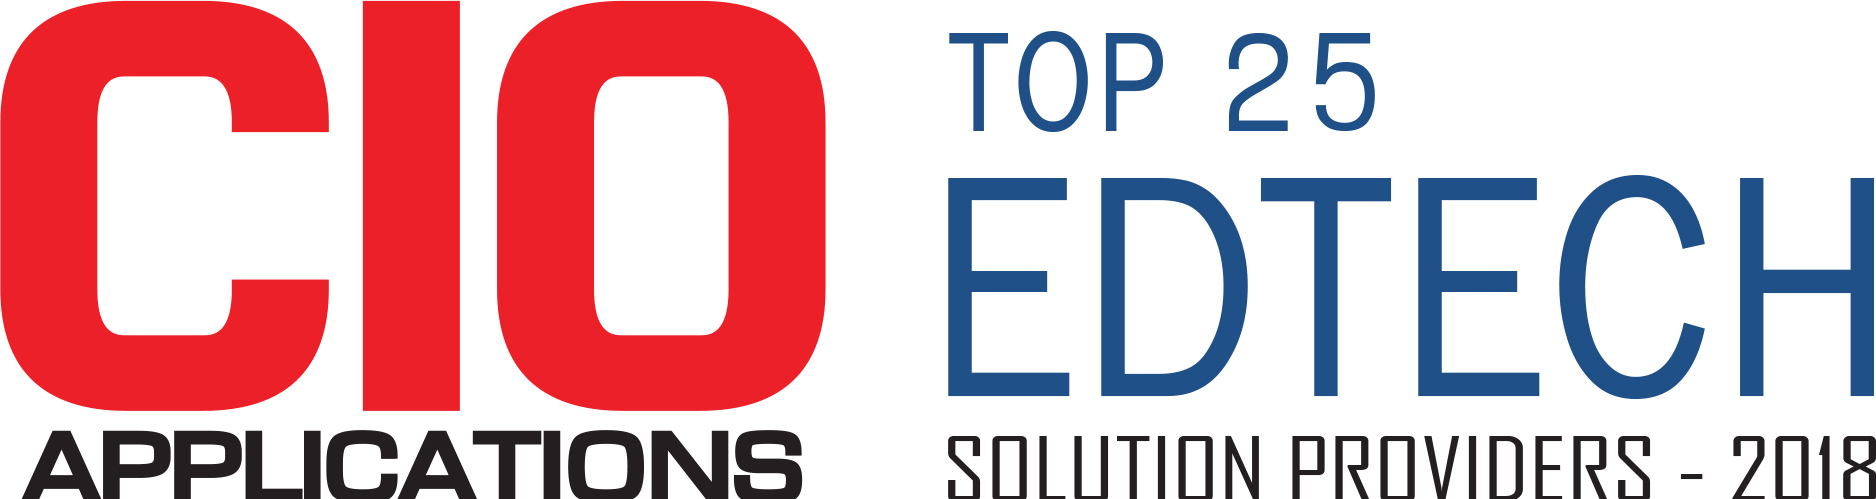 Top 25 EdTech Solution Companies - 2018